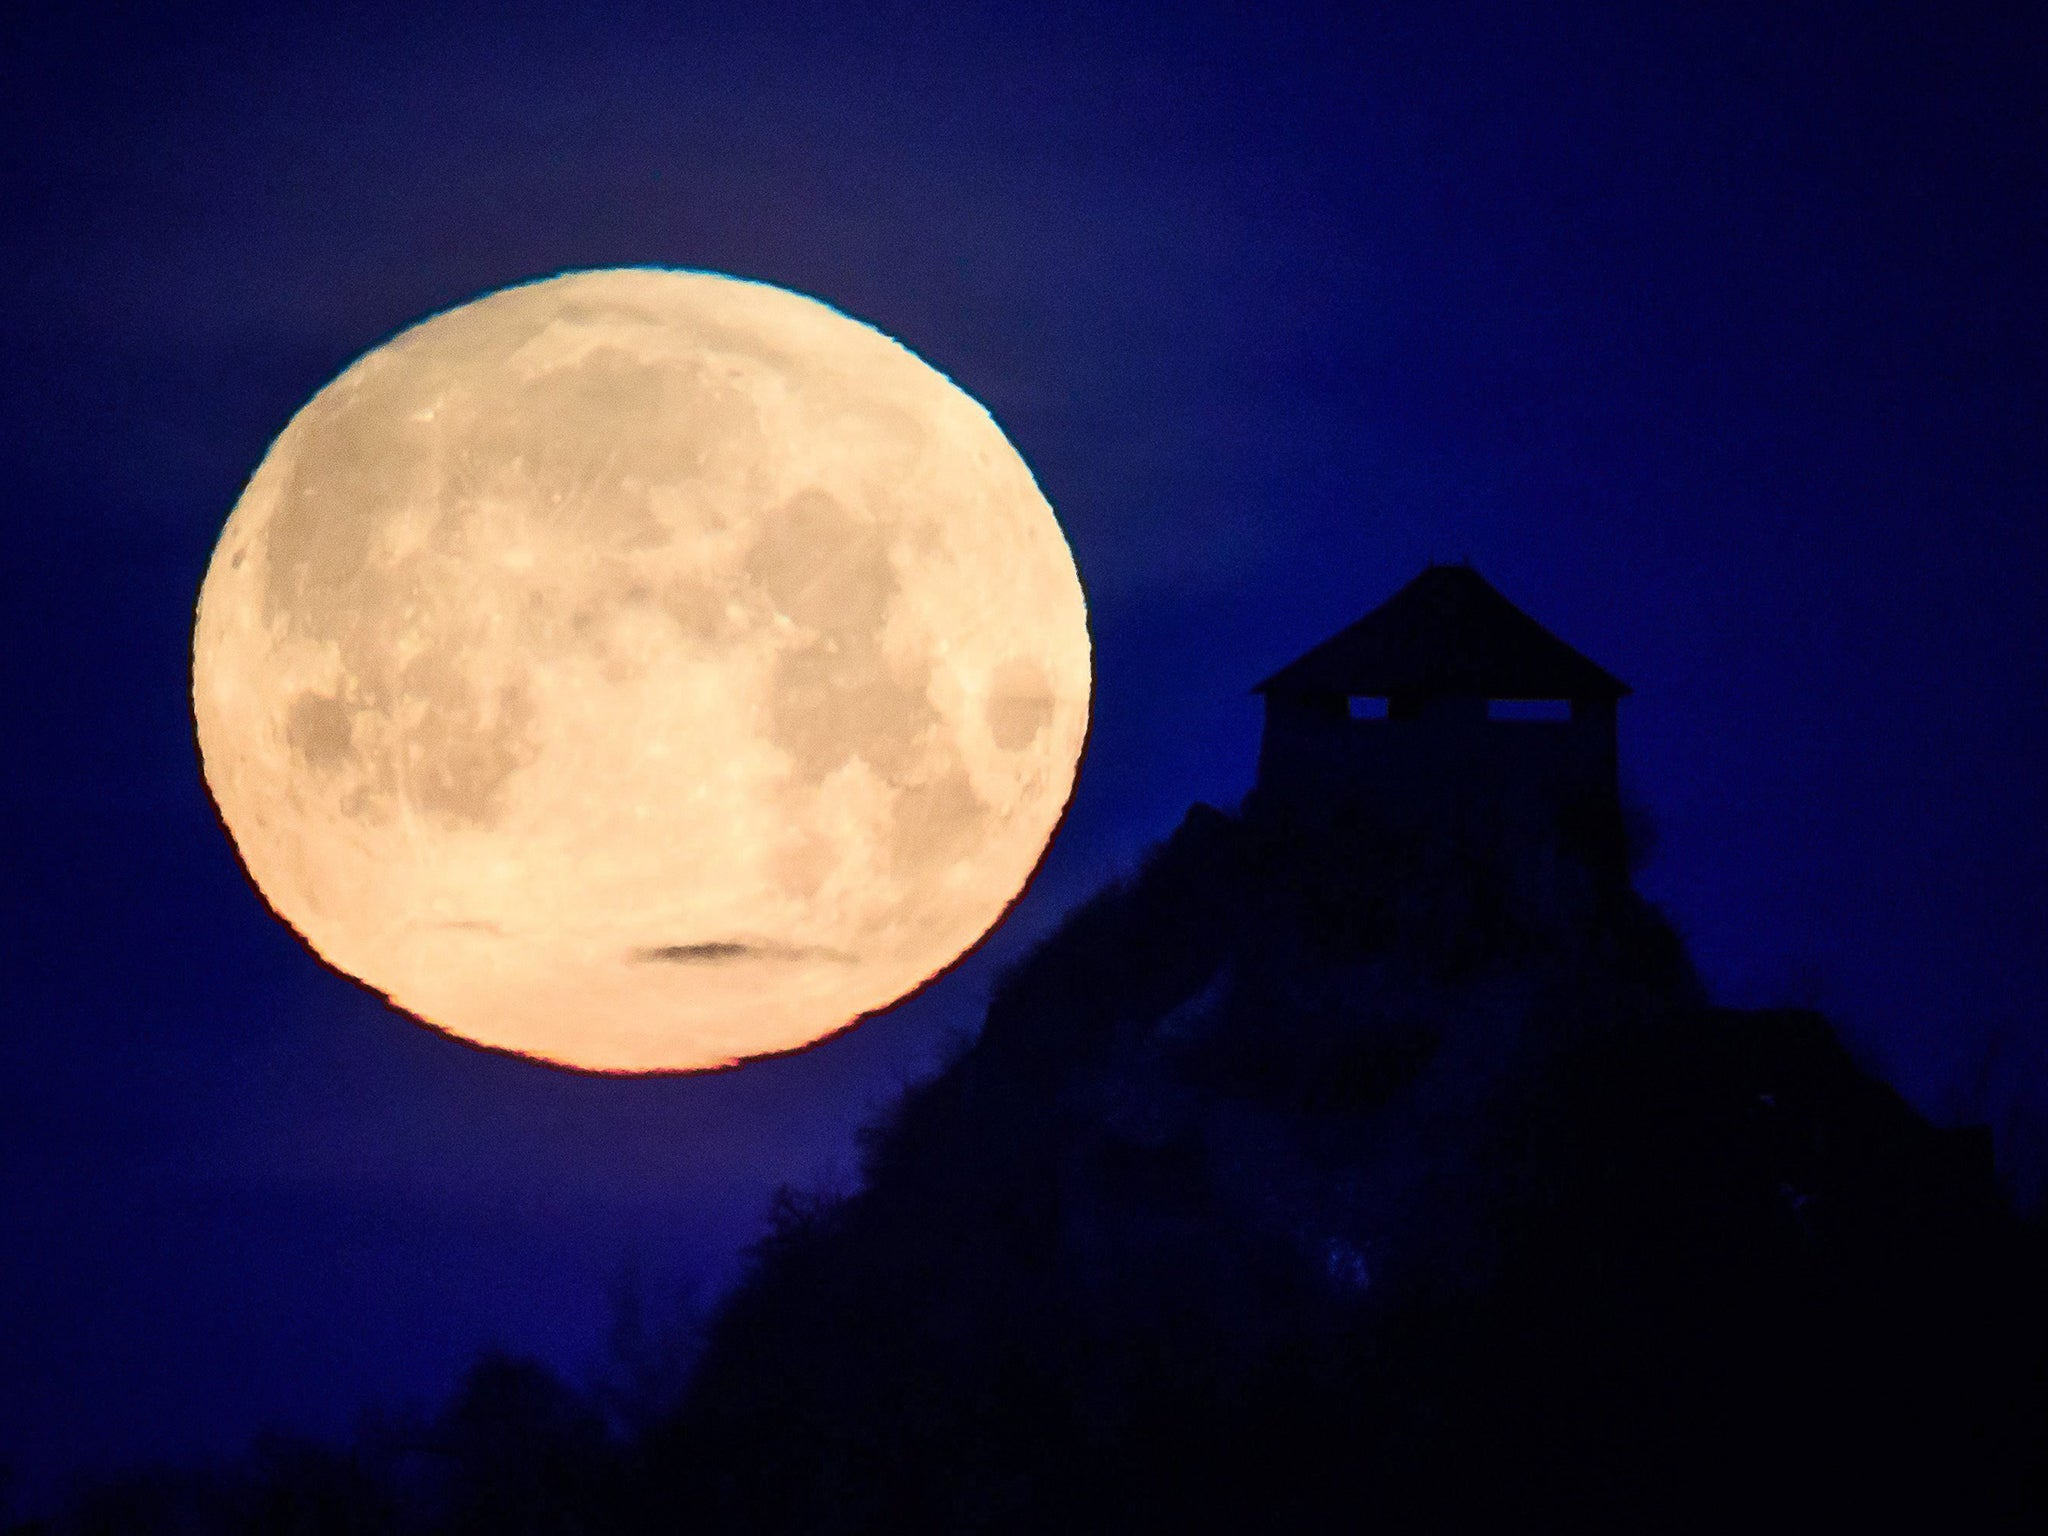 Super blue blood moon: How a full moon affects your sleep, according